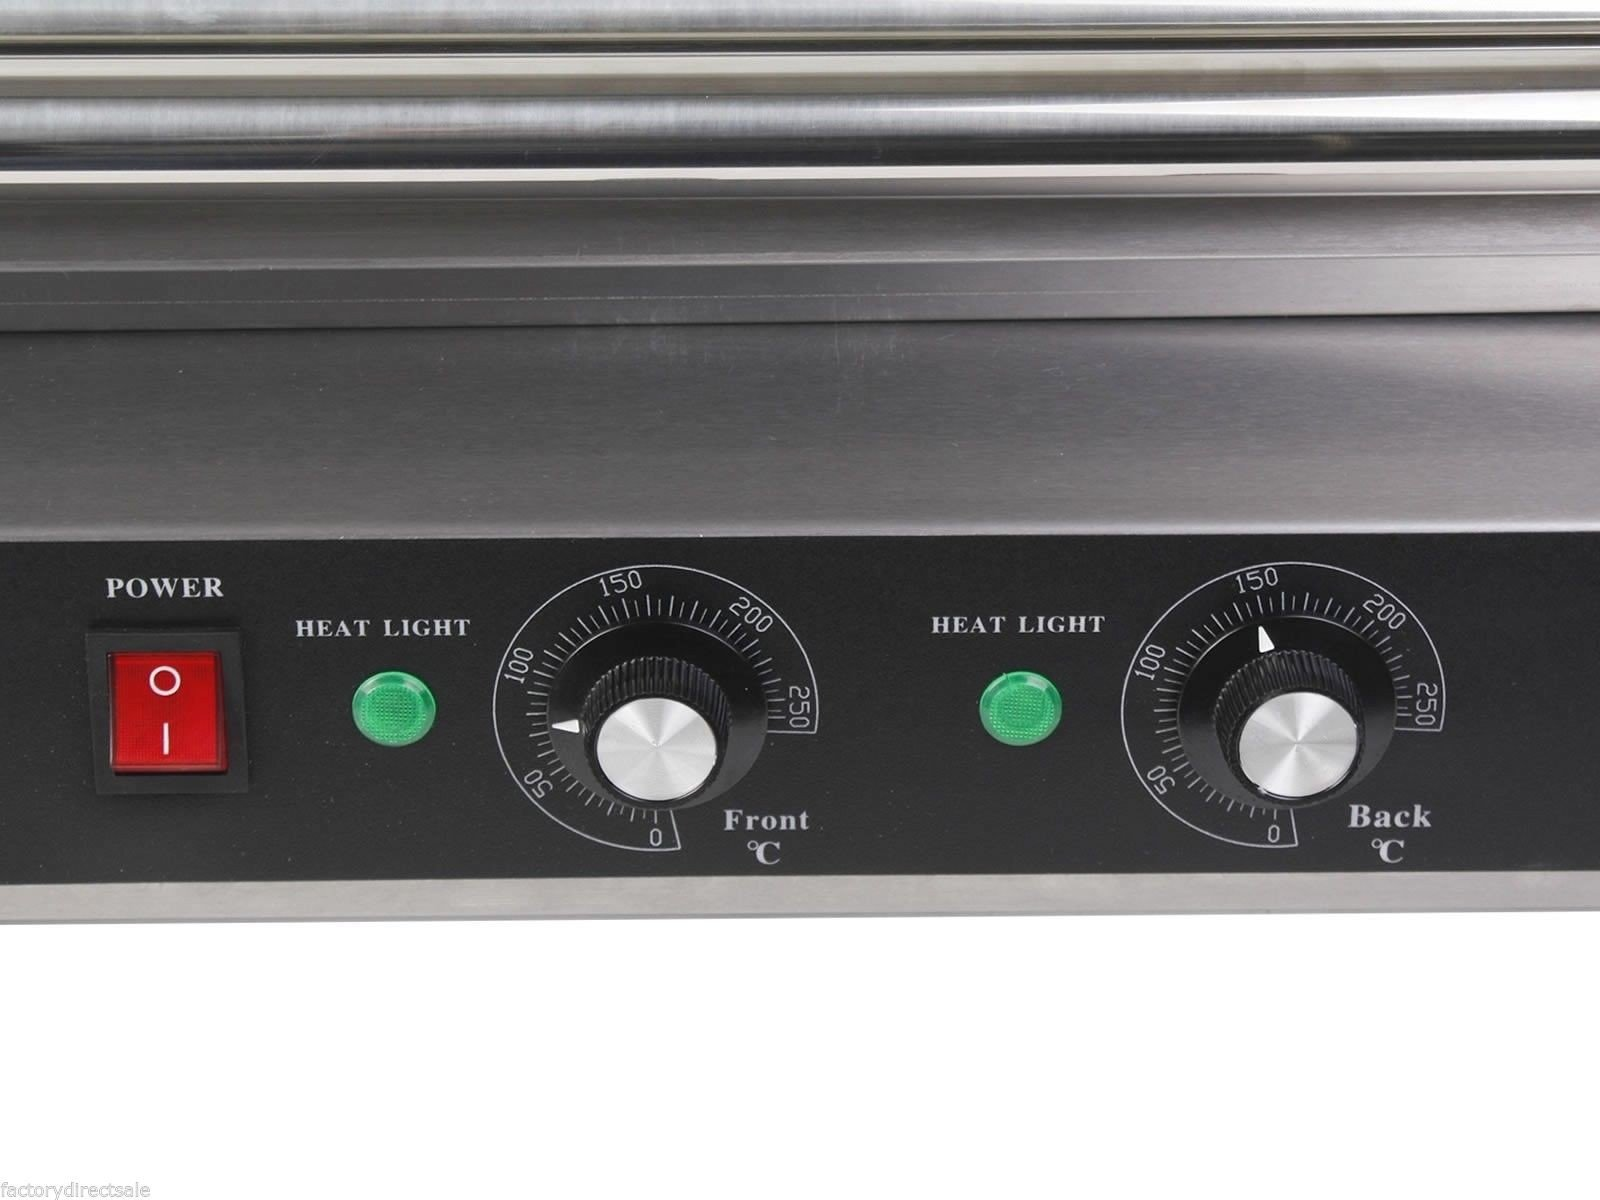 Commercial 30 Hot Dog 11 Roller Grill Cooker Machine by Hulaloveshop (Image #6)